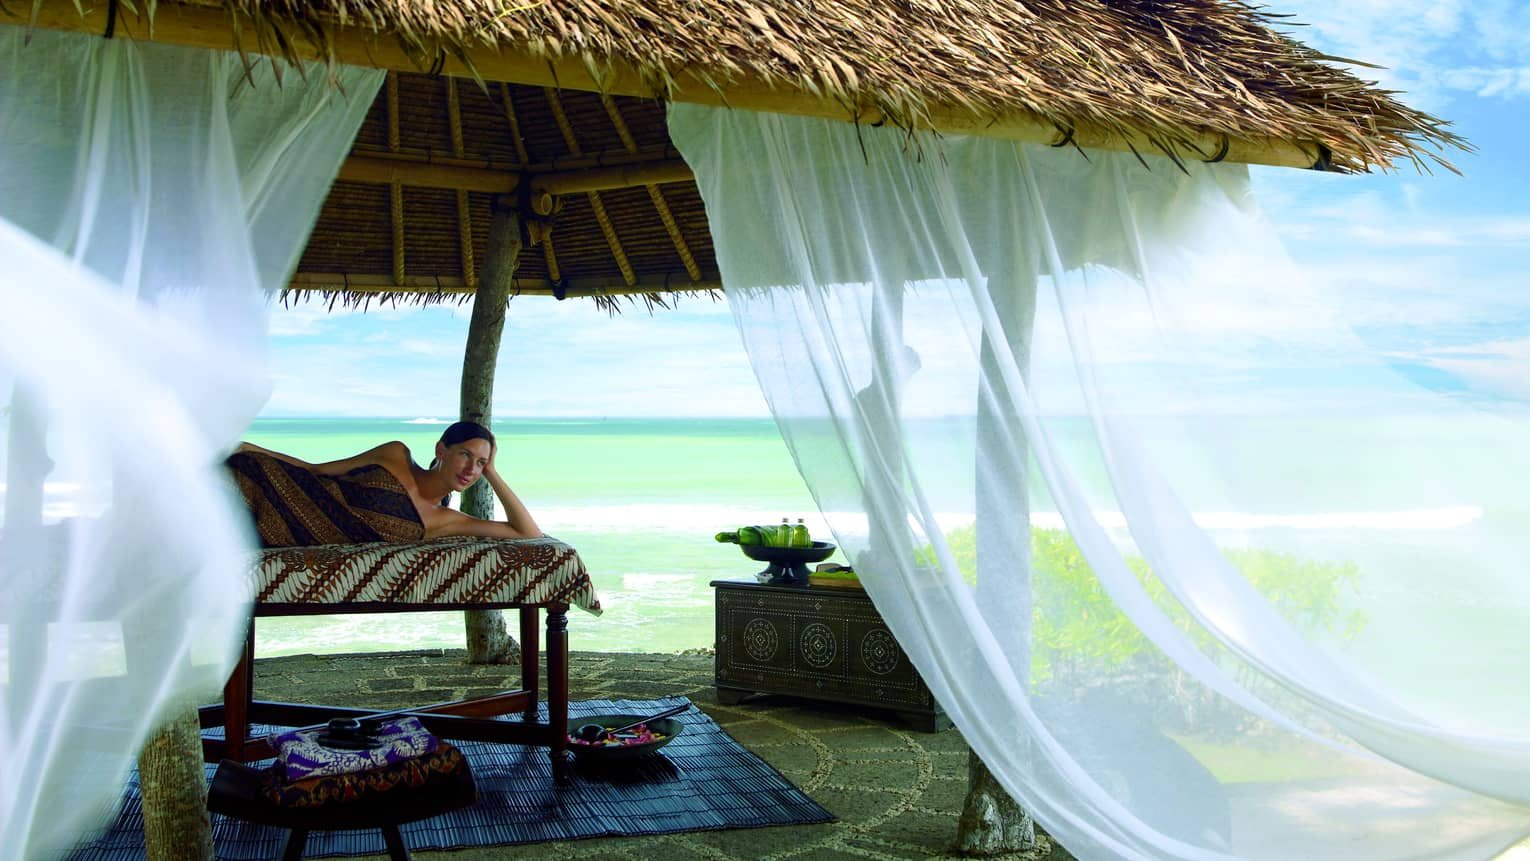 White curtains flow in the wind off thatched-roof gazebo as woman lies on massage table, gazes out at beach